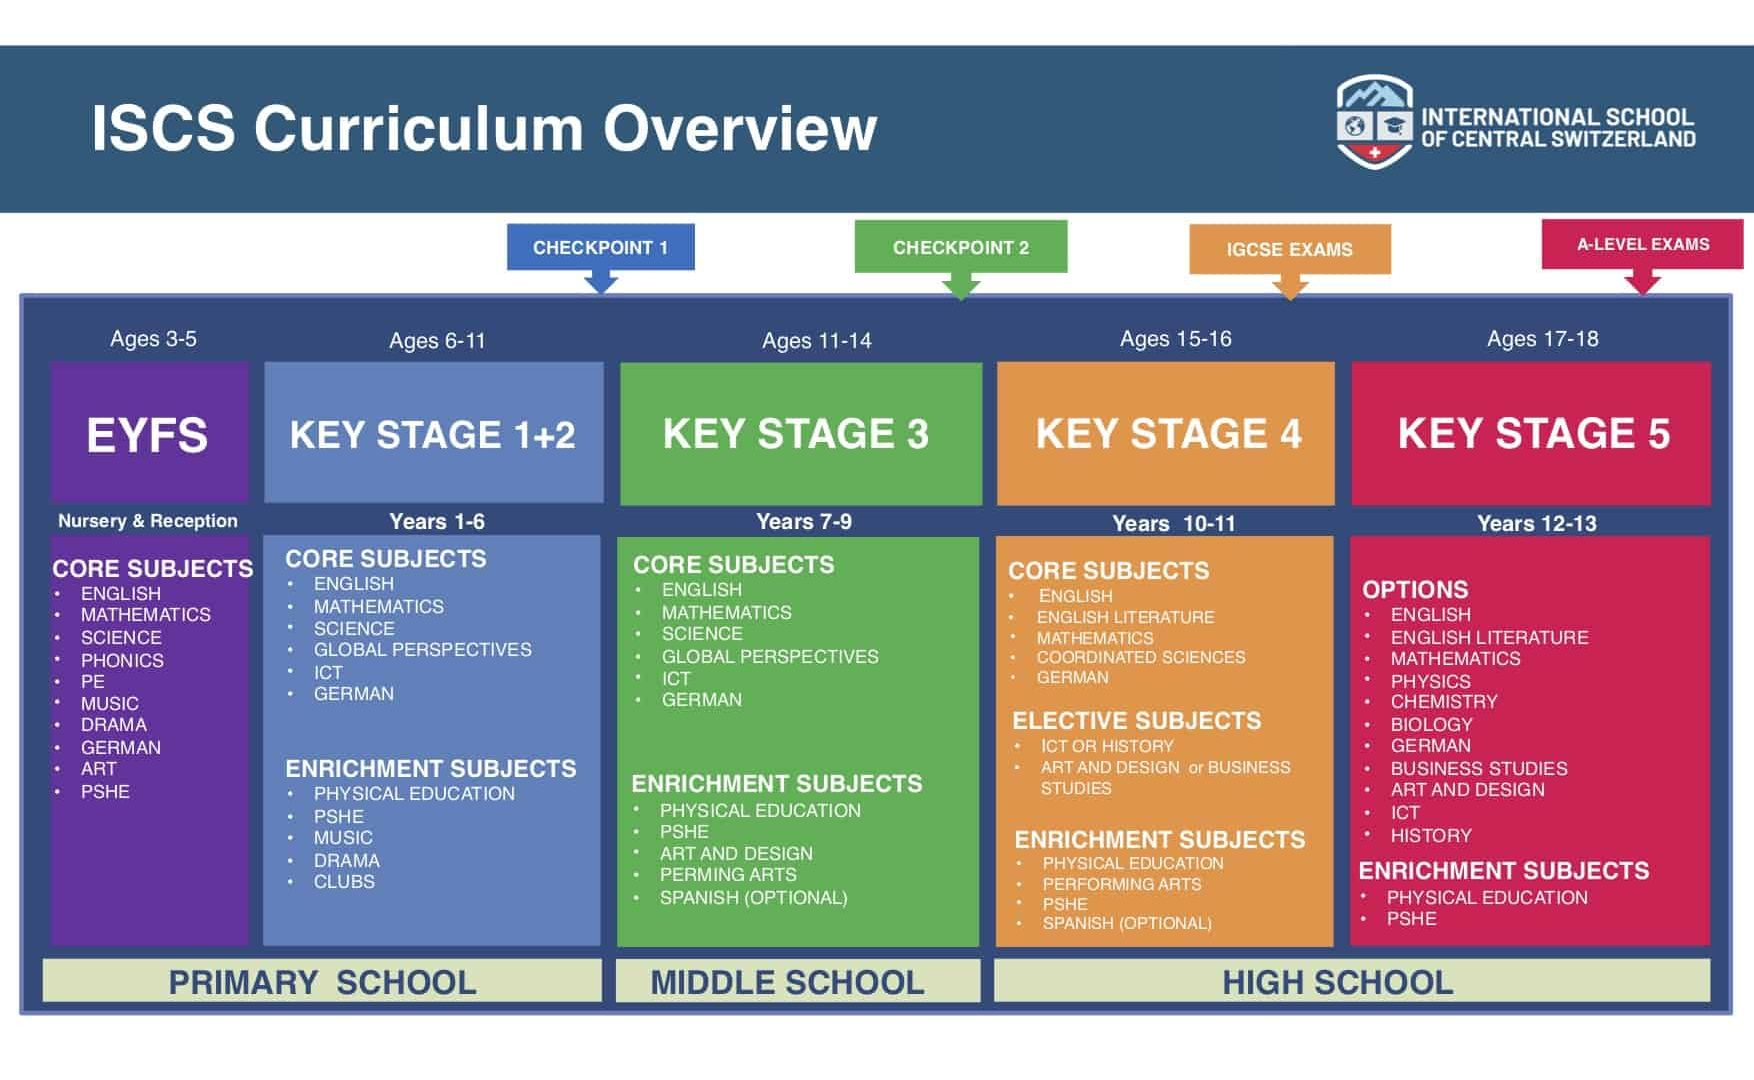 CURRICULUM OVERVIEW 21-22